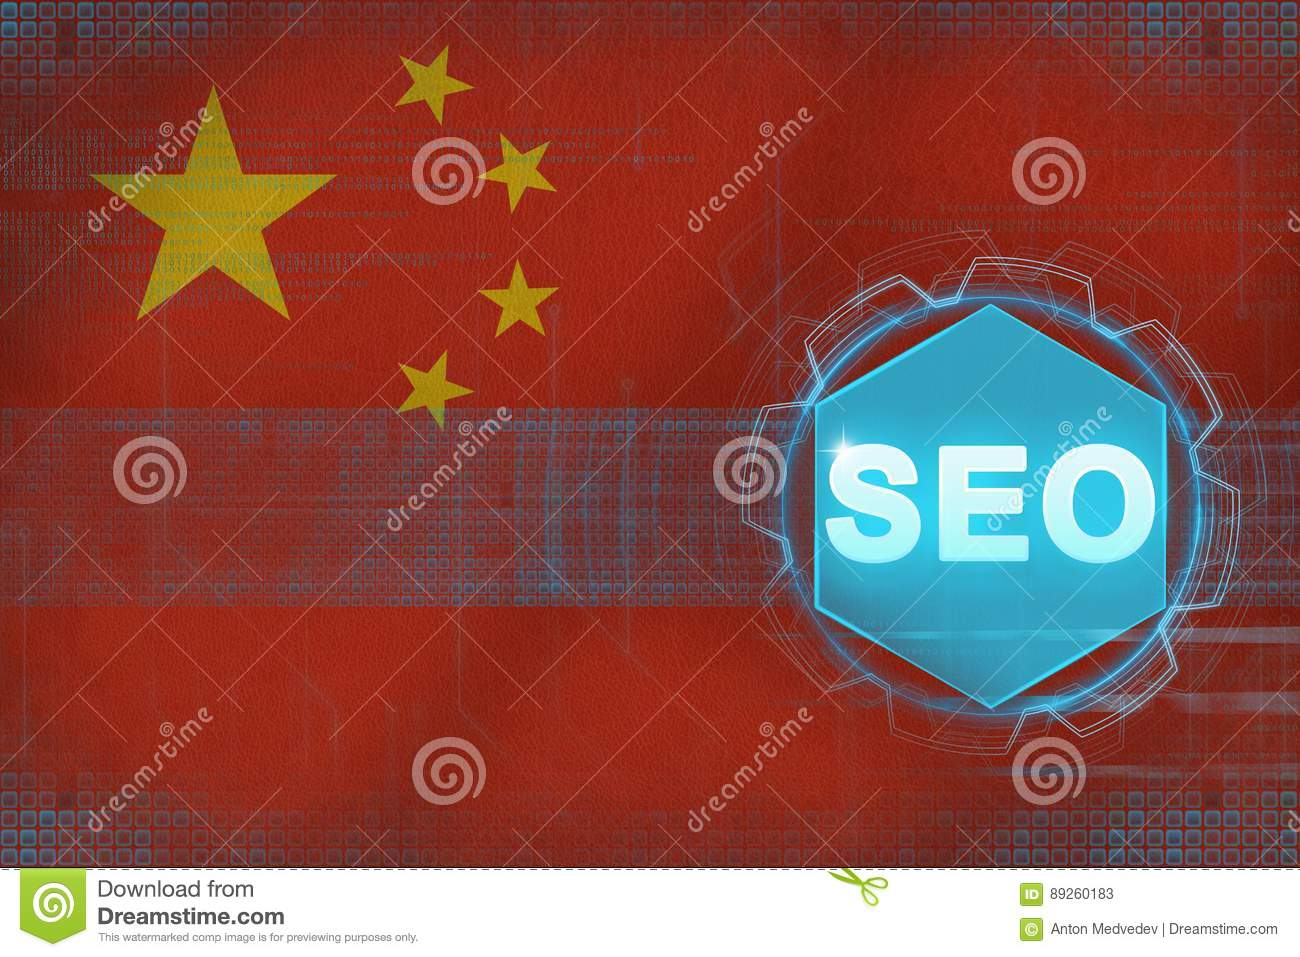 YouFind - Search Engine Optimization (Chinese) - YouTube